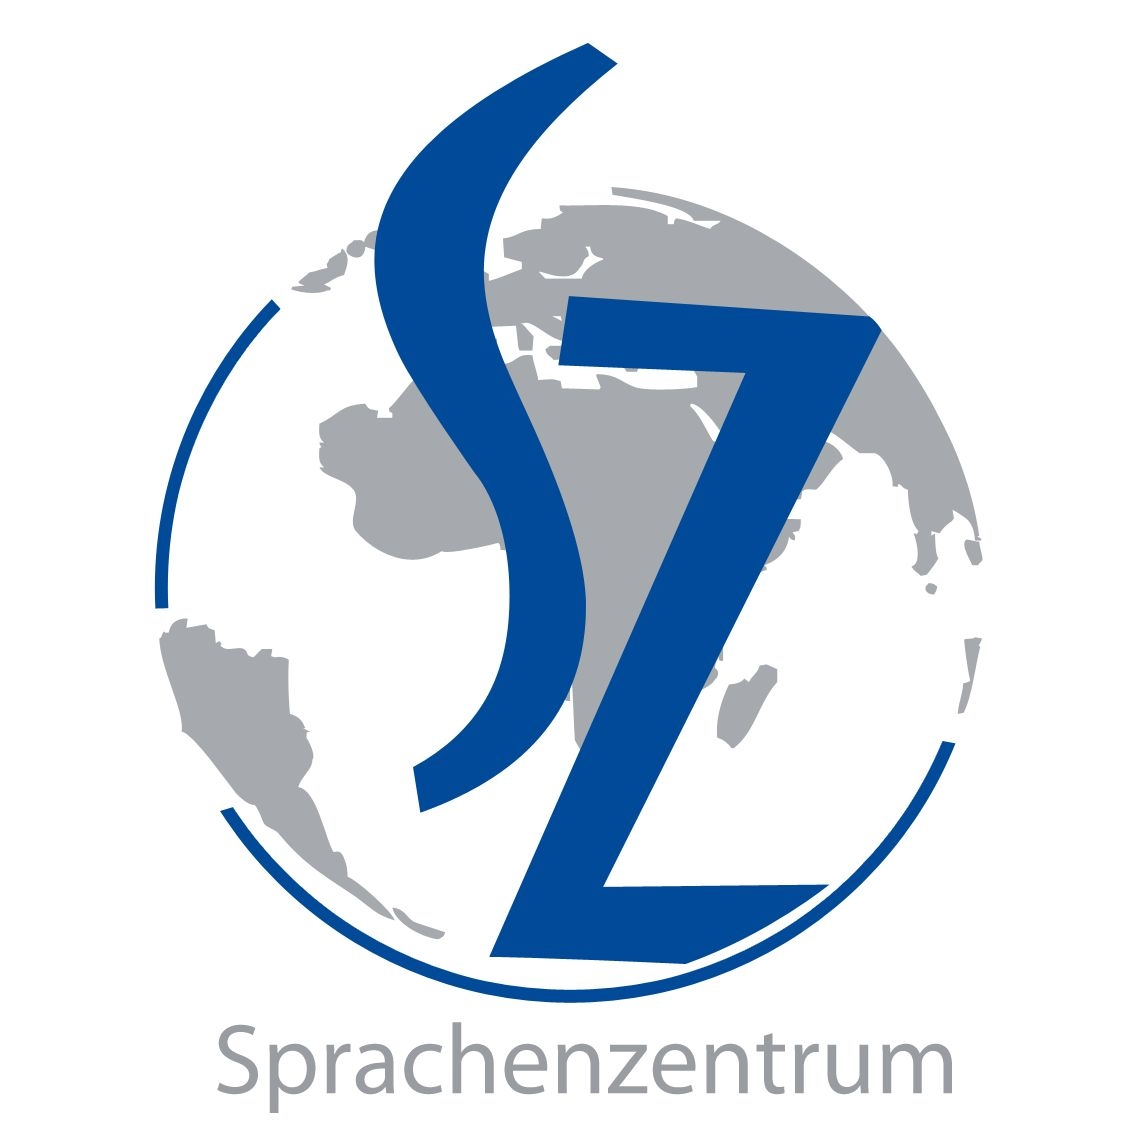 Sprachenzentrum Logo